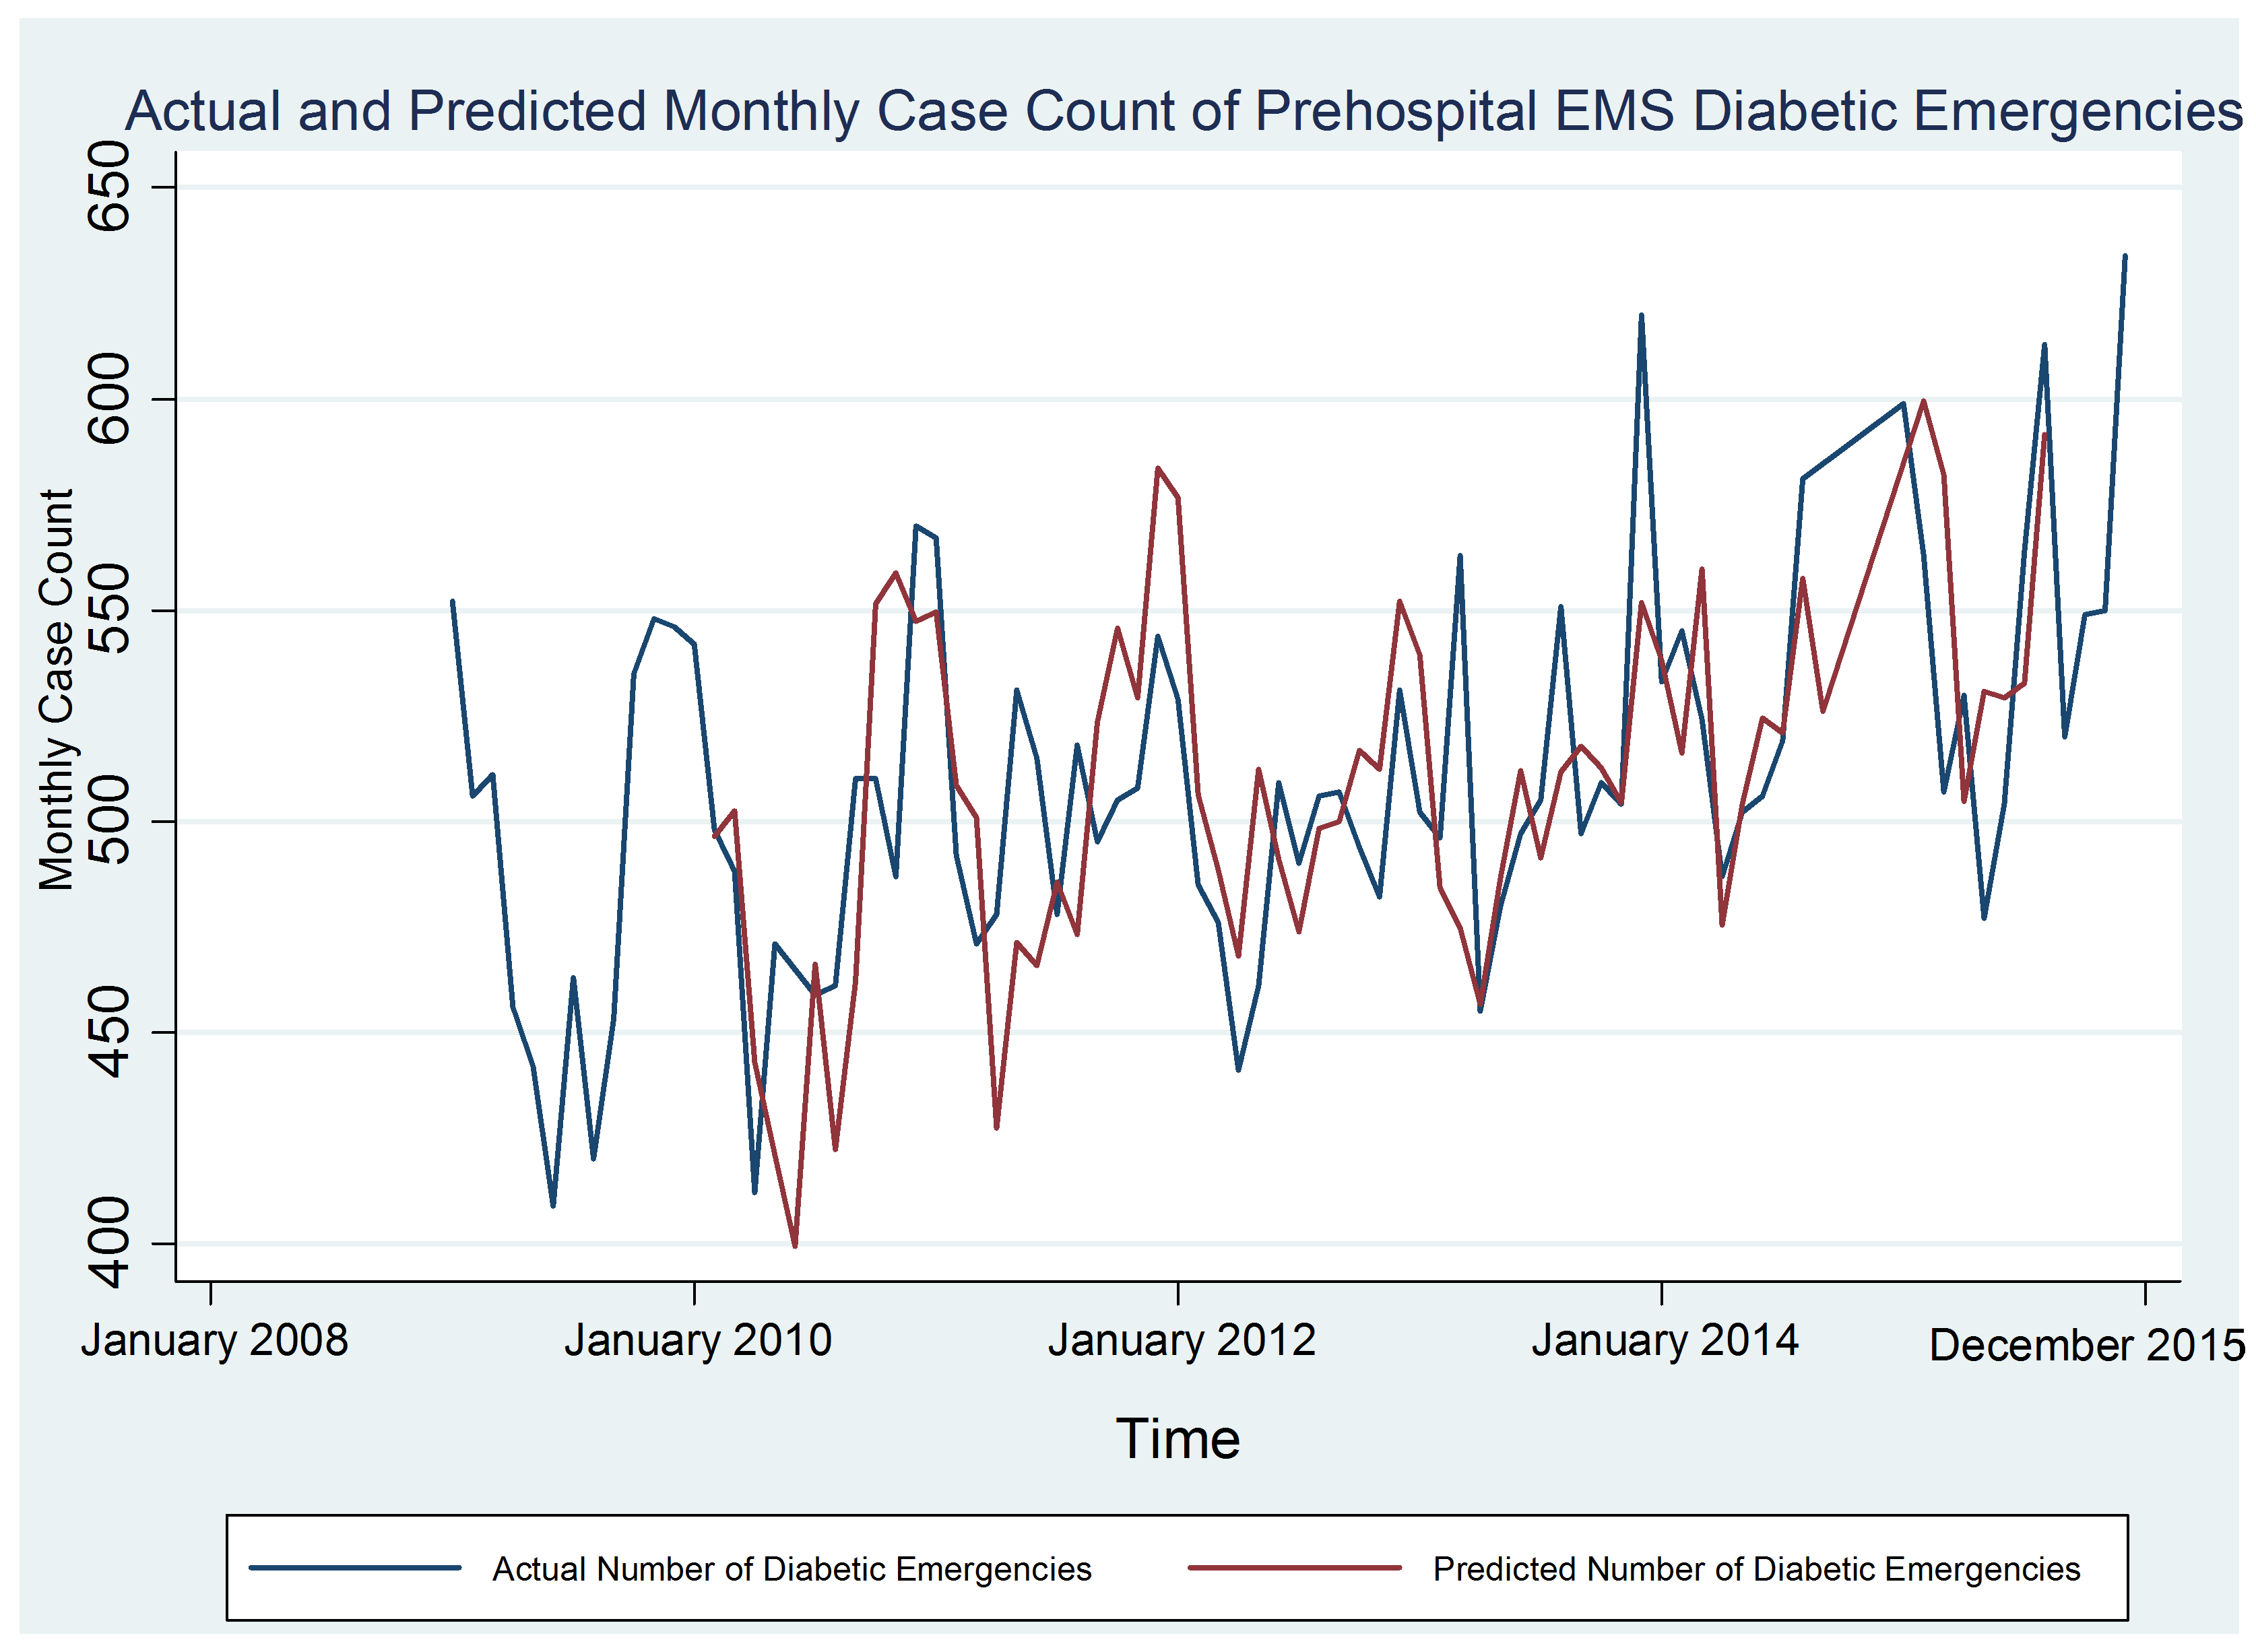 574bc56ac0edf-Actual+and+predicted+monthly+case+count+of+preshospital+EMS+diabetic+emergencies.png